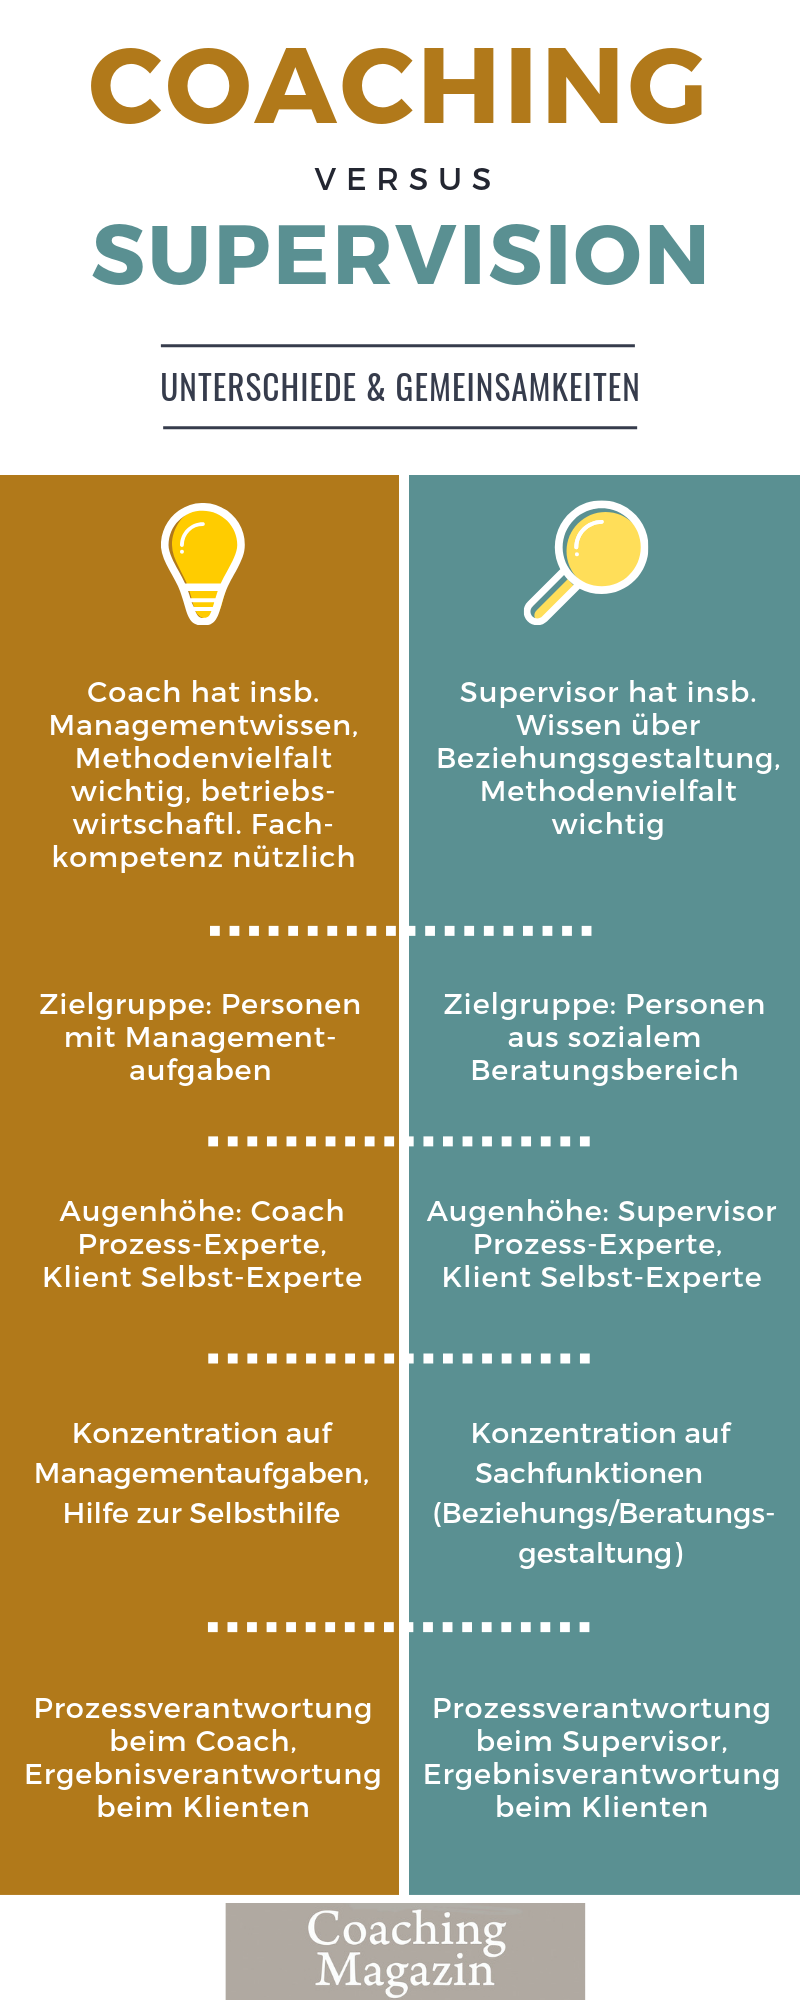 Coaching vs. Supervision